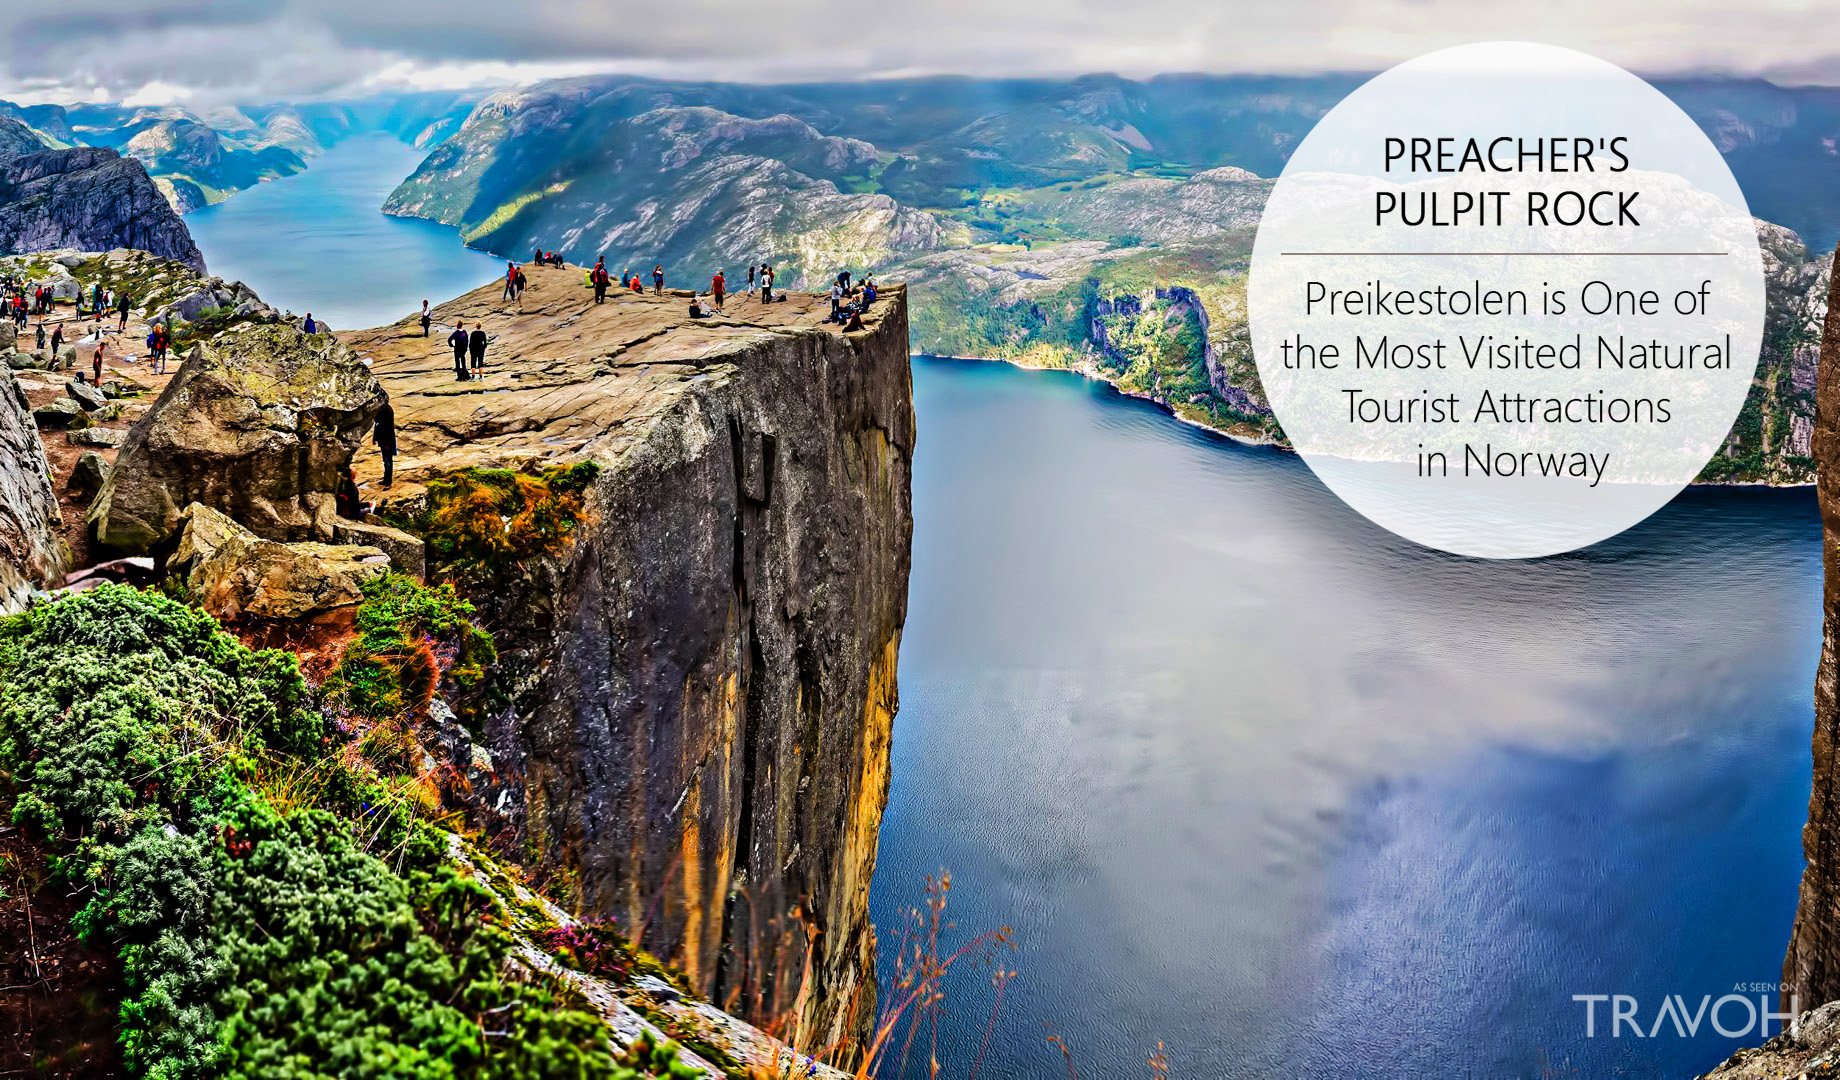 Preachers Pulpit Rock - Preikestolen is One of the Most Visited Natural Tourist Attractions in Norway